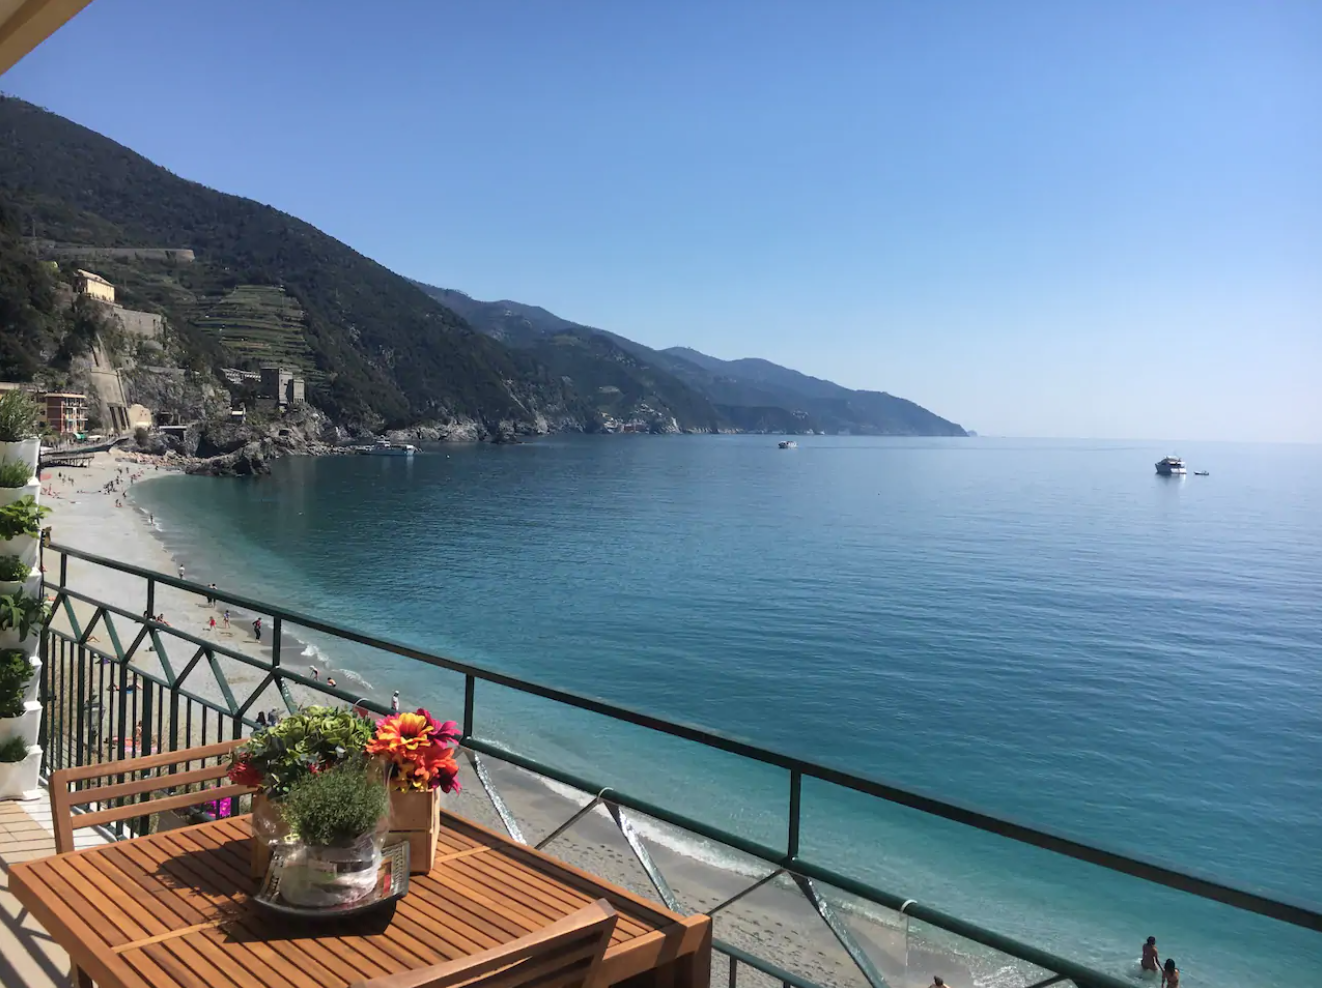 the lungo mare nostro flat is one of the best airbnbs in cinque terre to stay in if you want panoramic sea views